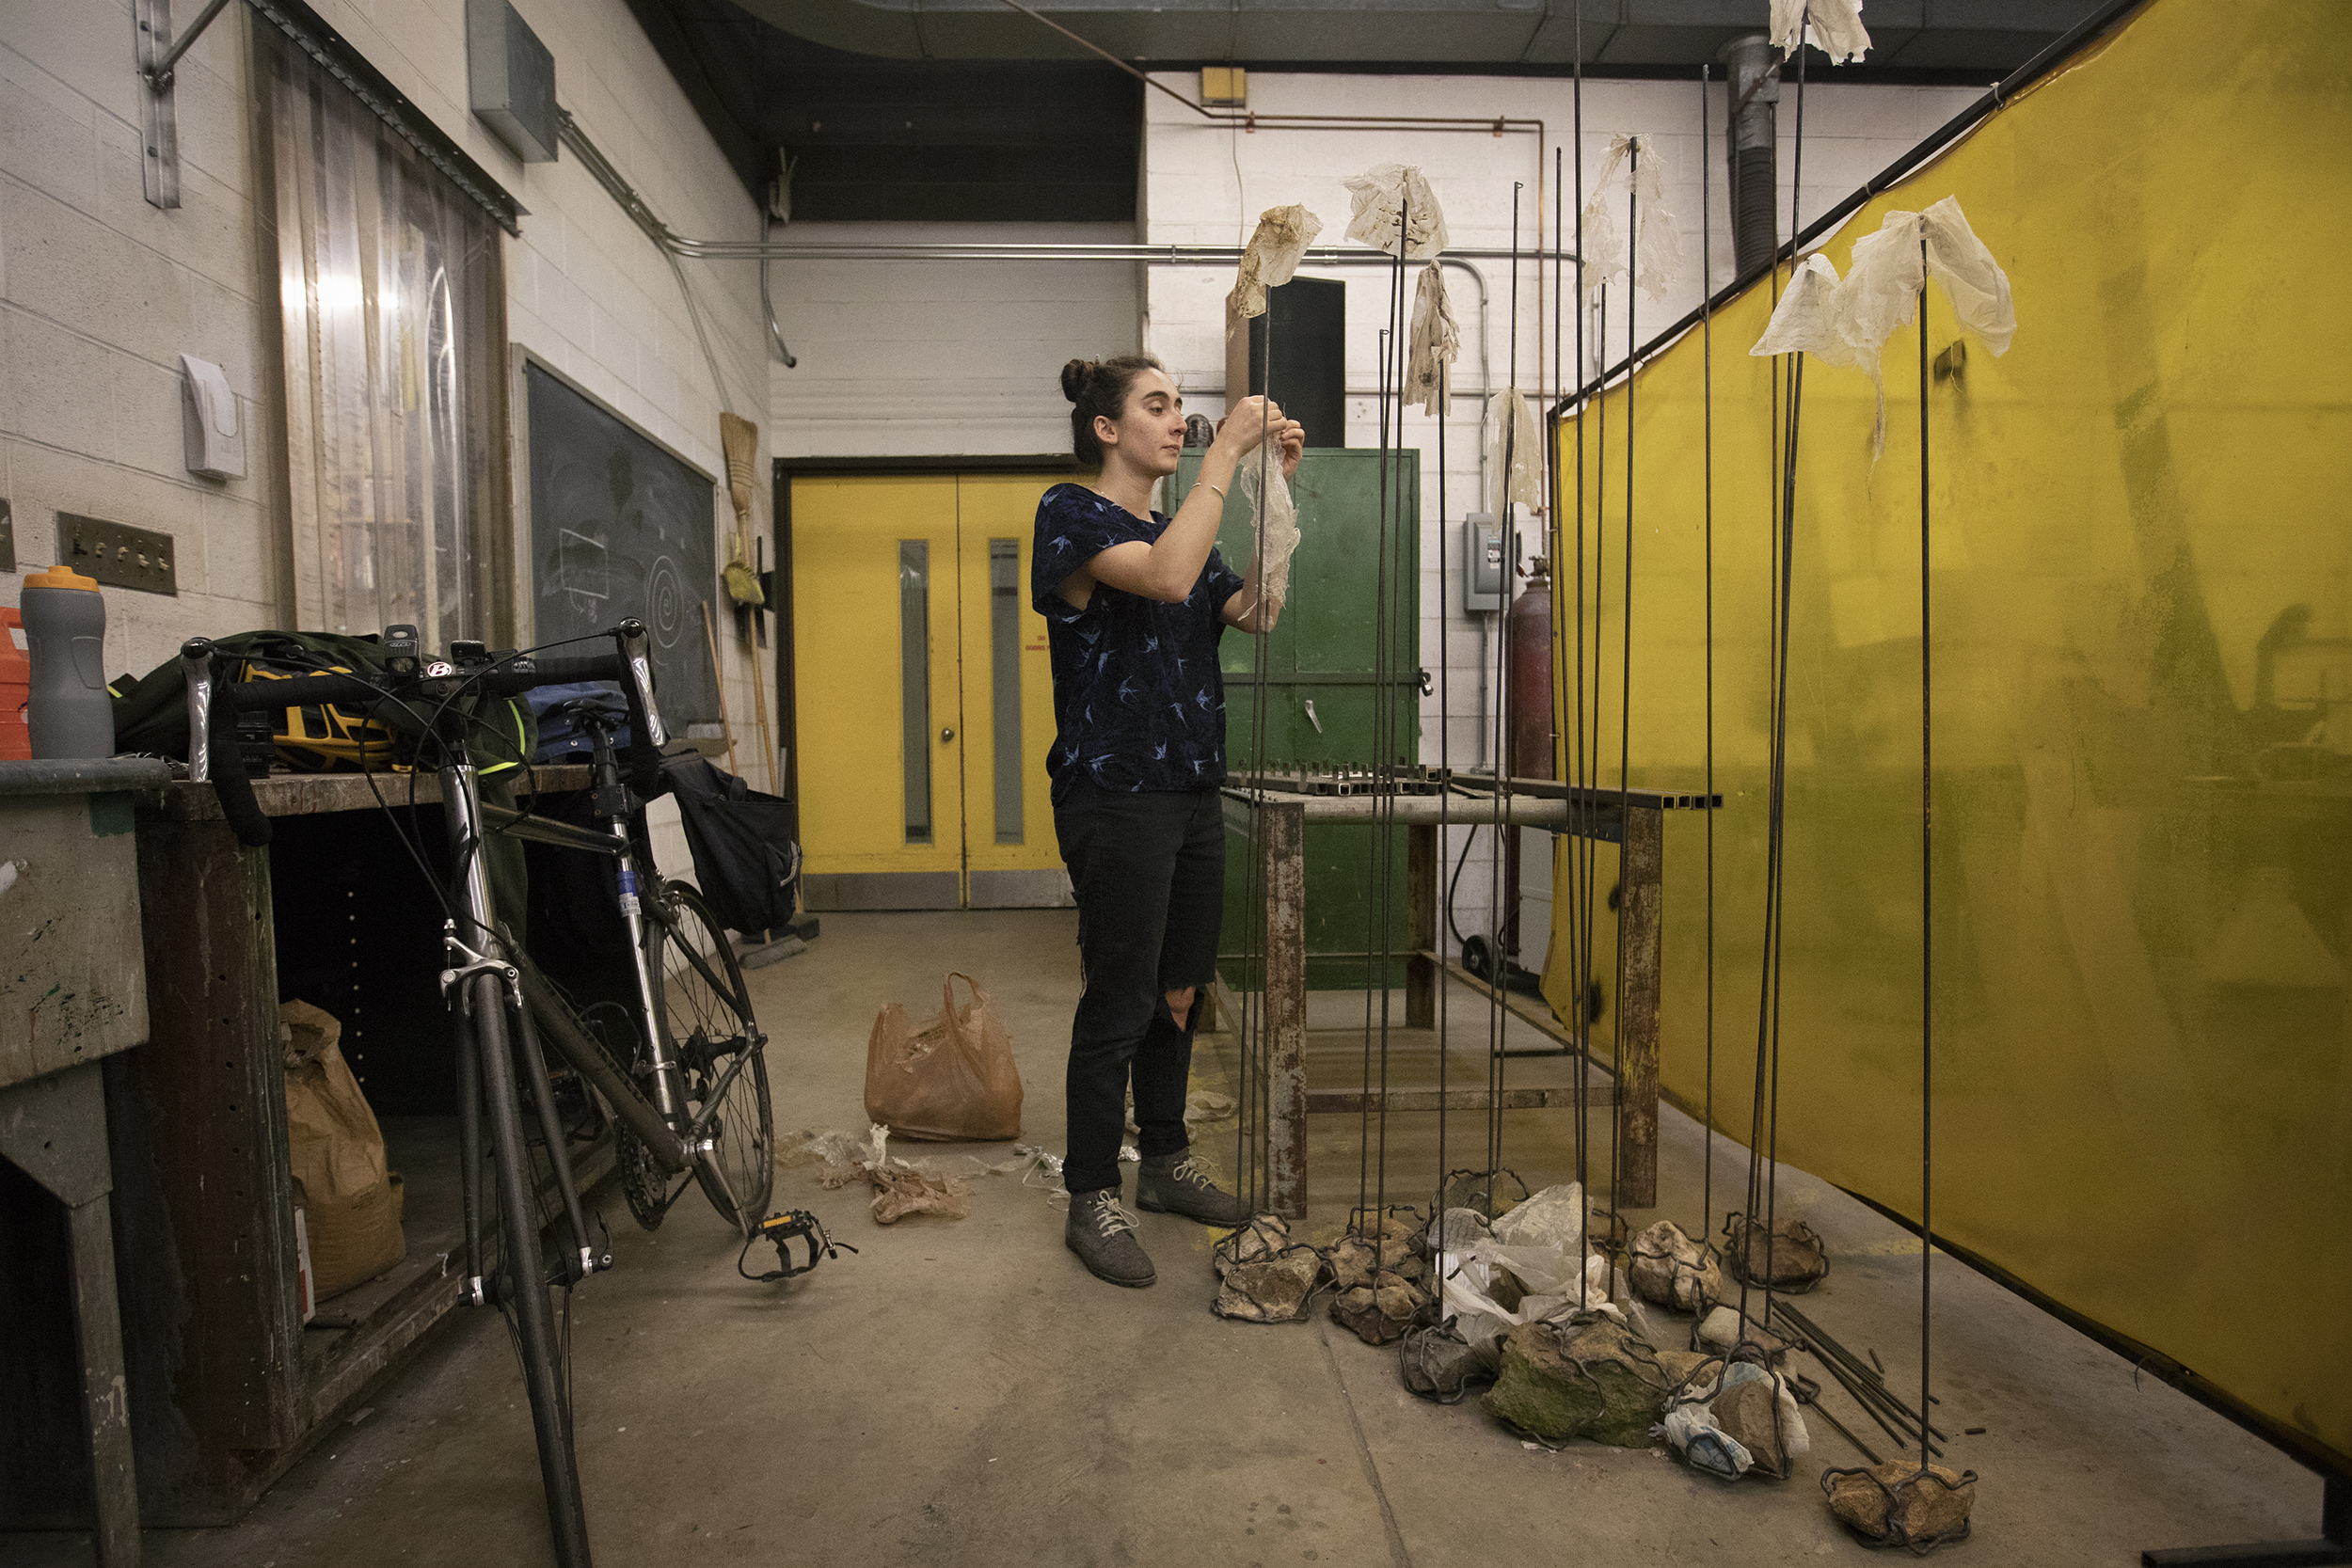 Ayla Gizlice stands in the middle of a welding shop and attaches plastic bags to large, metal stands.